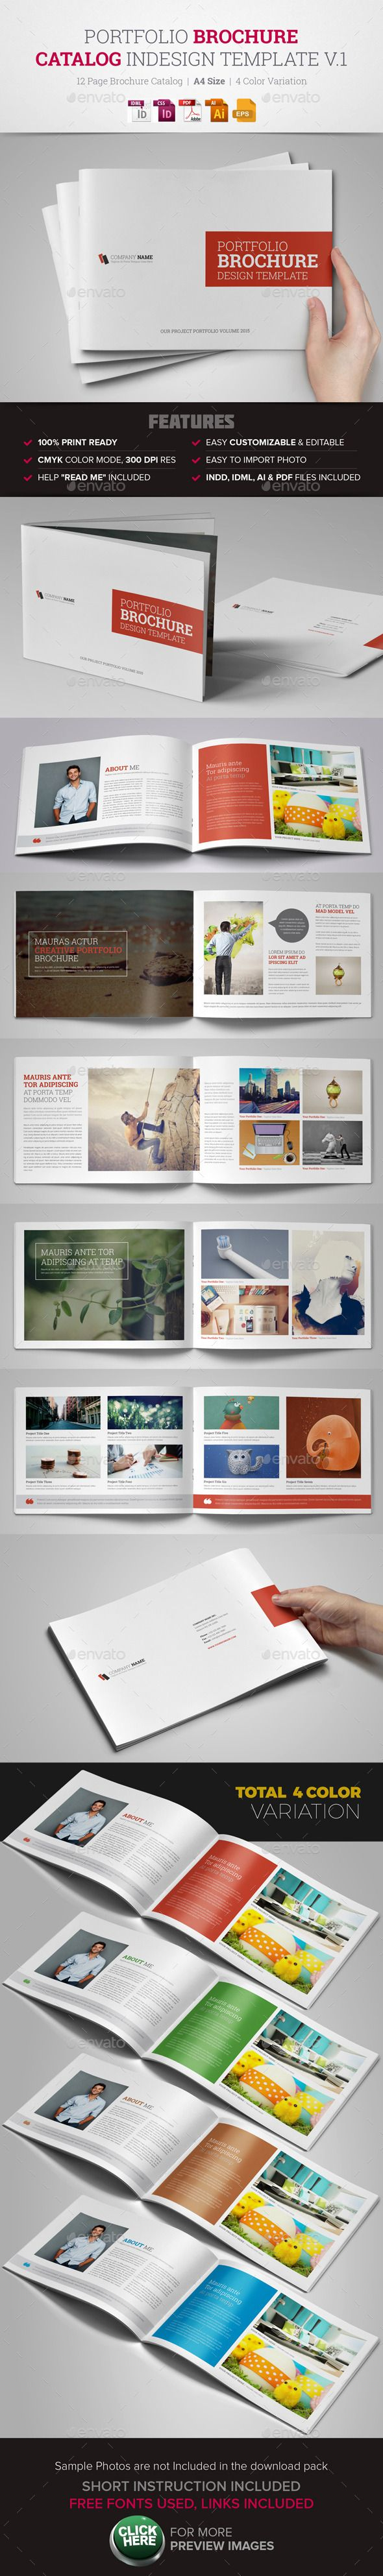 Portfolio Brochure InDesign Template … | Pinteres…